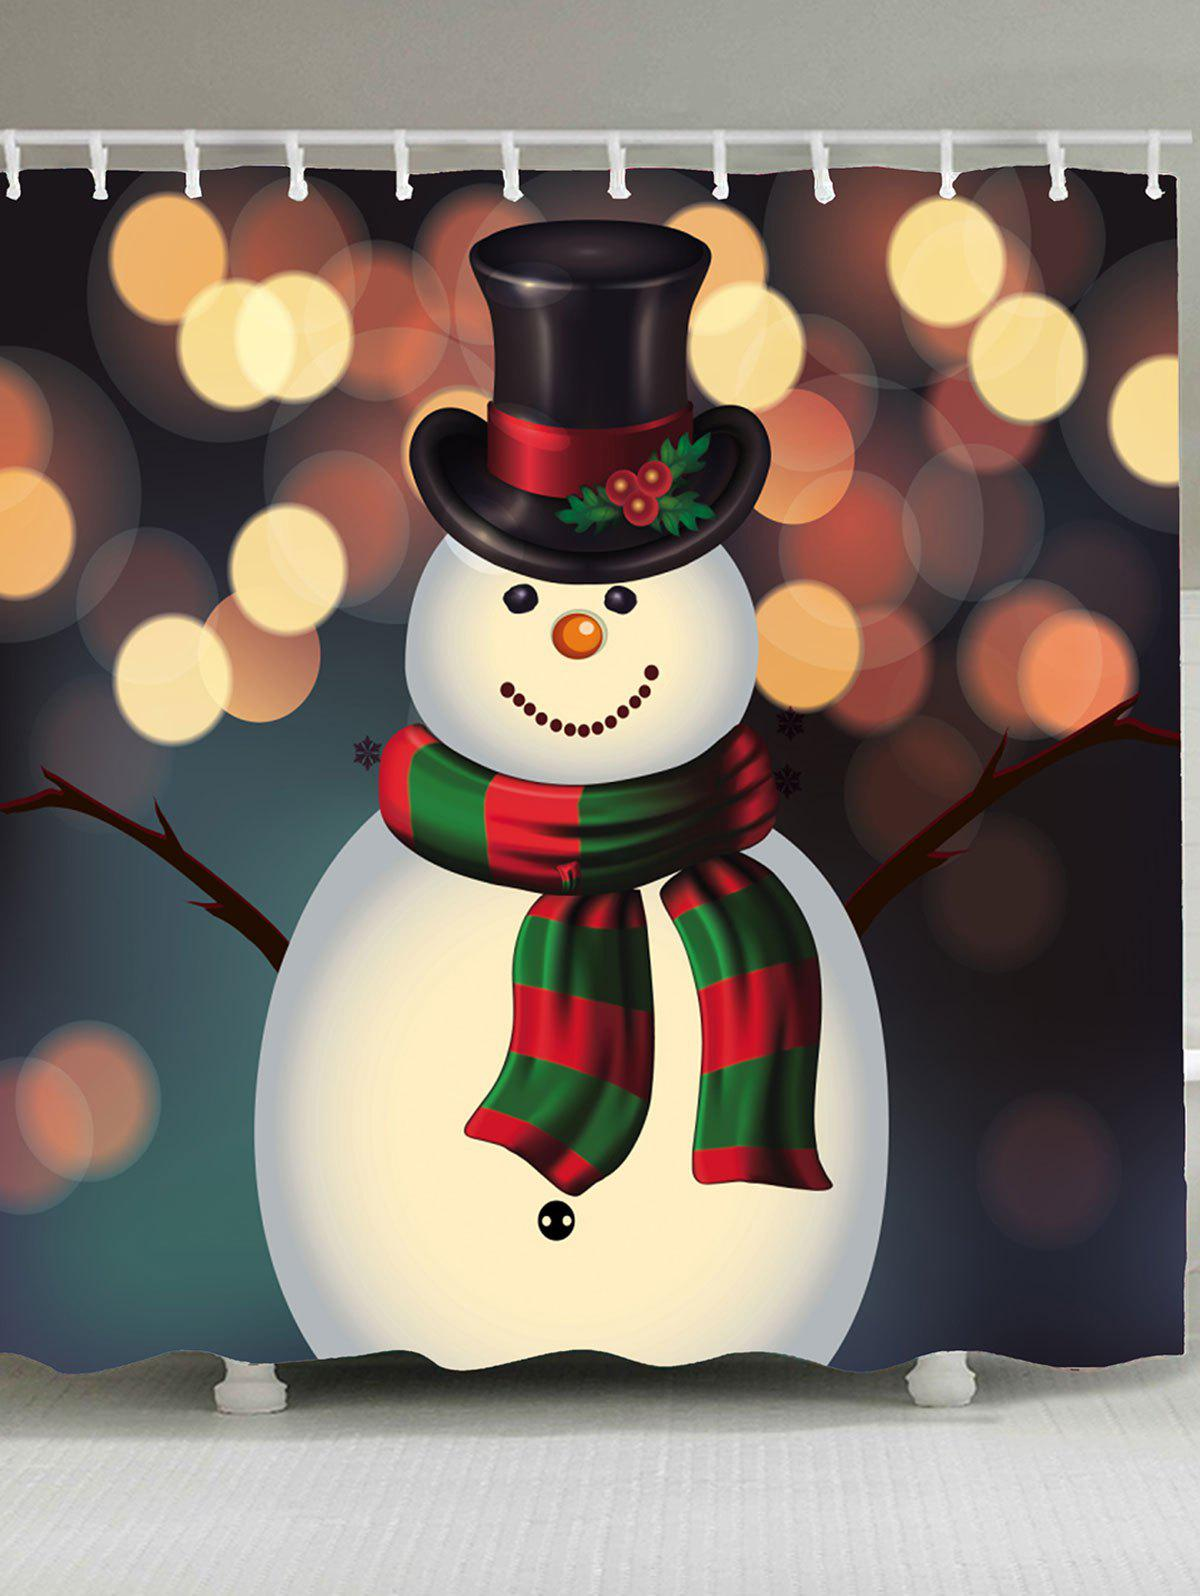 Christmas Snowman Pattern Bathroom Shower CurtainHOME<br><br>Size: W71 INCH * L71 INCH; Color: COLORFUL; Products Type: Shower Curtains; Materials: Polyester; Pattern: Snowman; Style: Festival; Number of Hook Holes: W59 inch * L71 inch:10, W71 inch * L71 inch:12, W71 inch * L79 inch:12; Package Contents: 1 x Shower Curtain 1 x Hooks (Set);